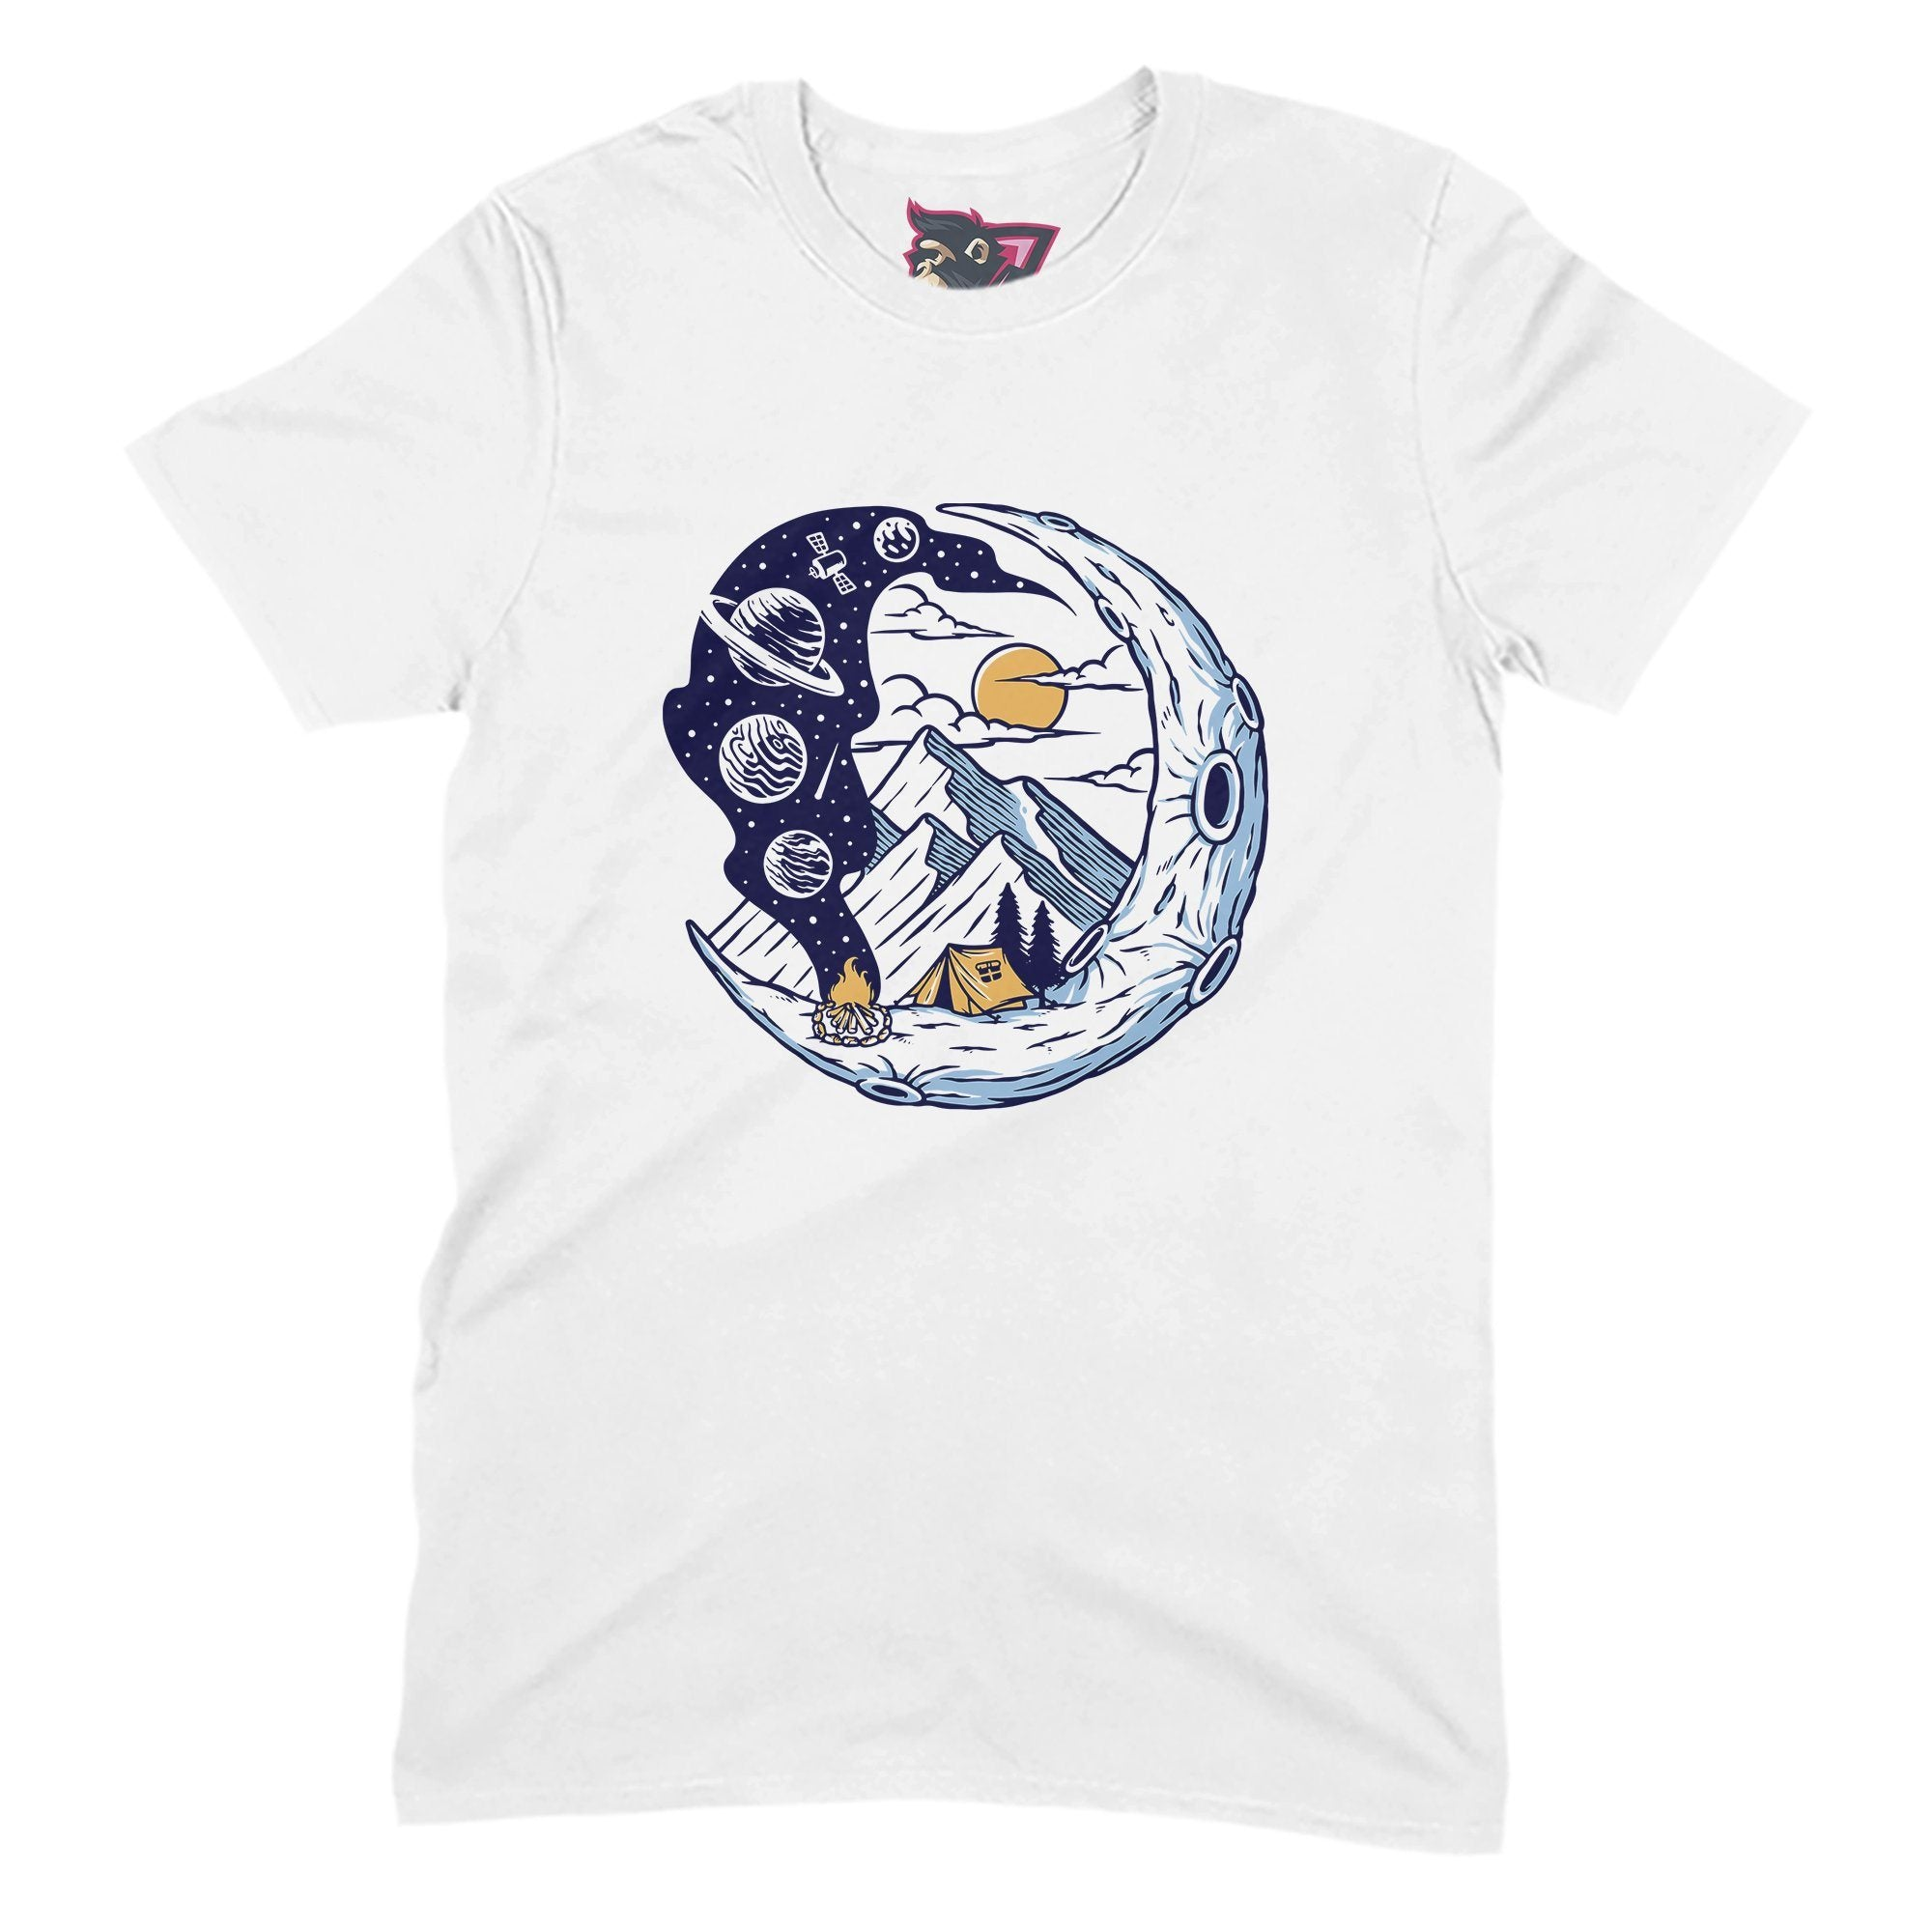 Moon Camping Primate Novelty Unisex T-Shirt Adults: S